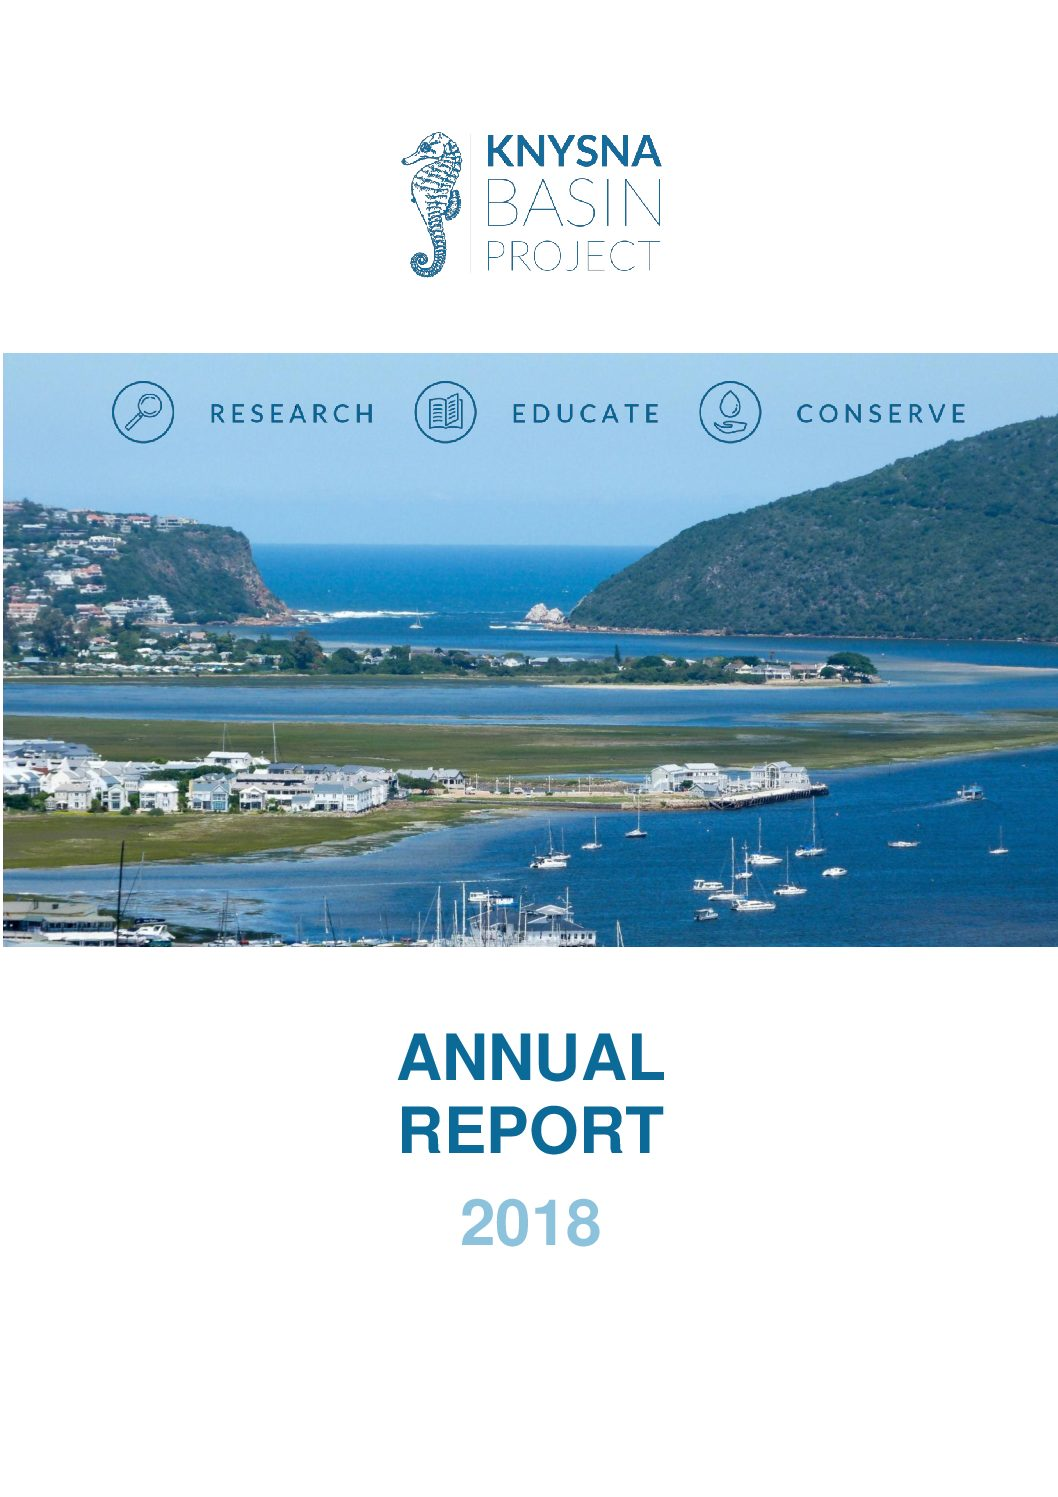 Knysna Basin Project: Annual Report (November 2018)